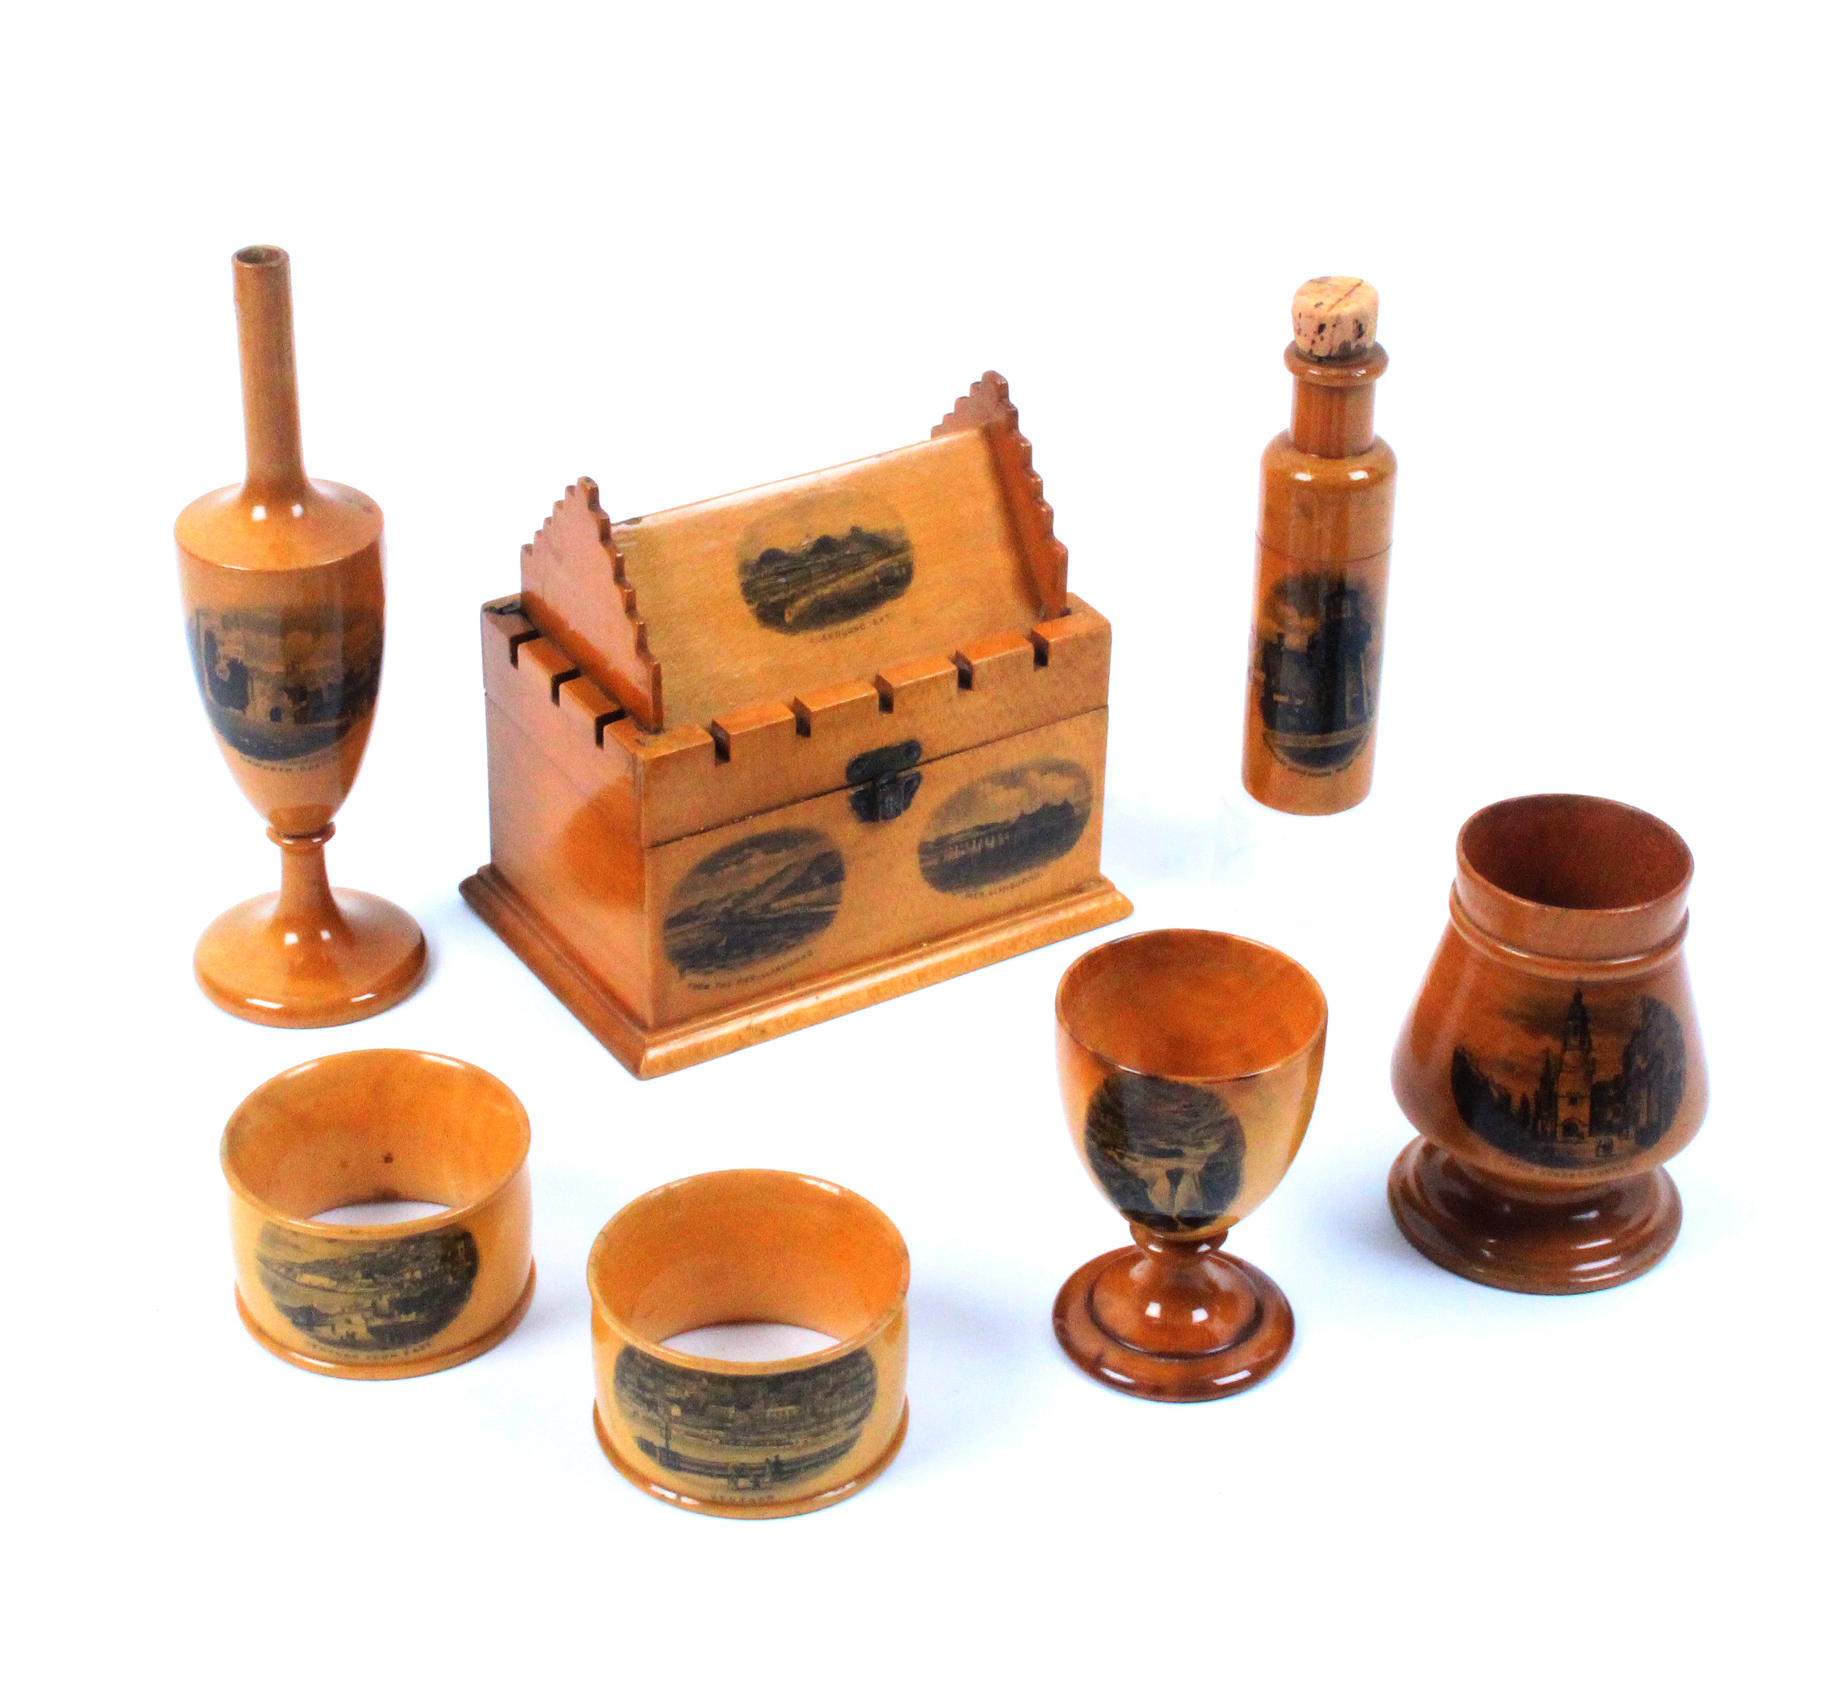 Mauchline ware - seven pieces - a crenalated rectangular box with pitched roof (Llandudno Bay/From